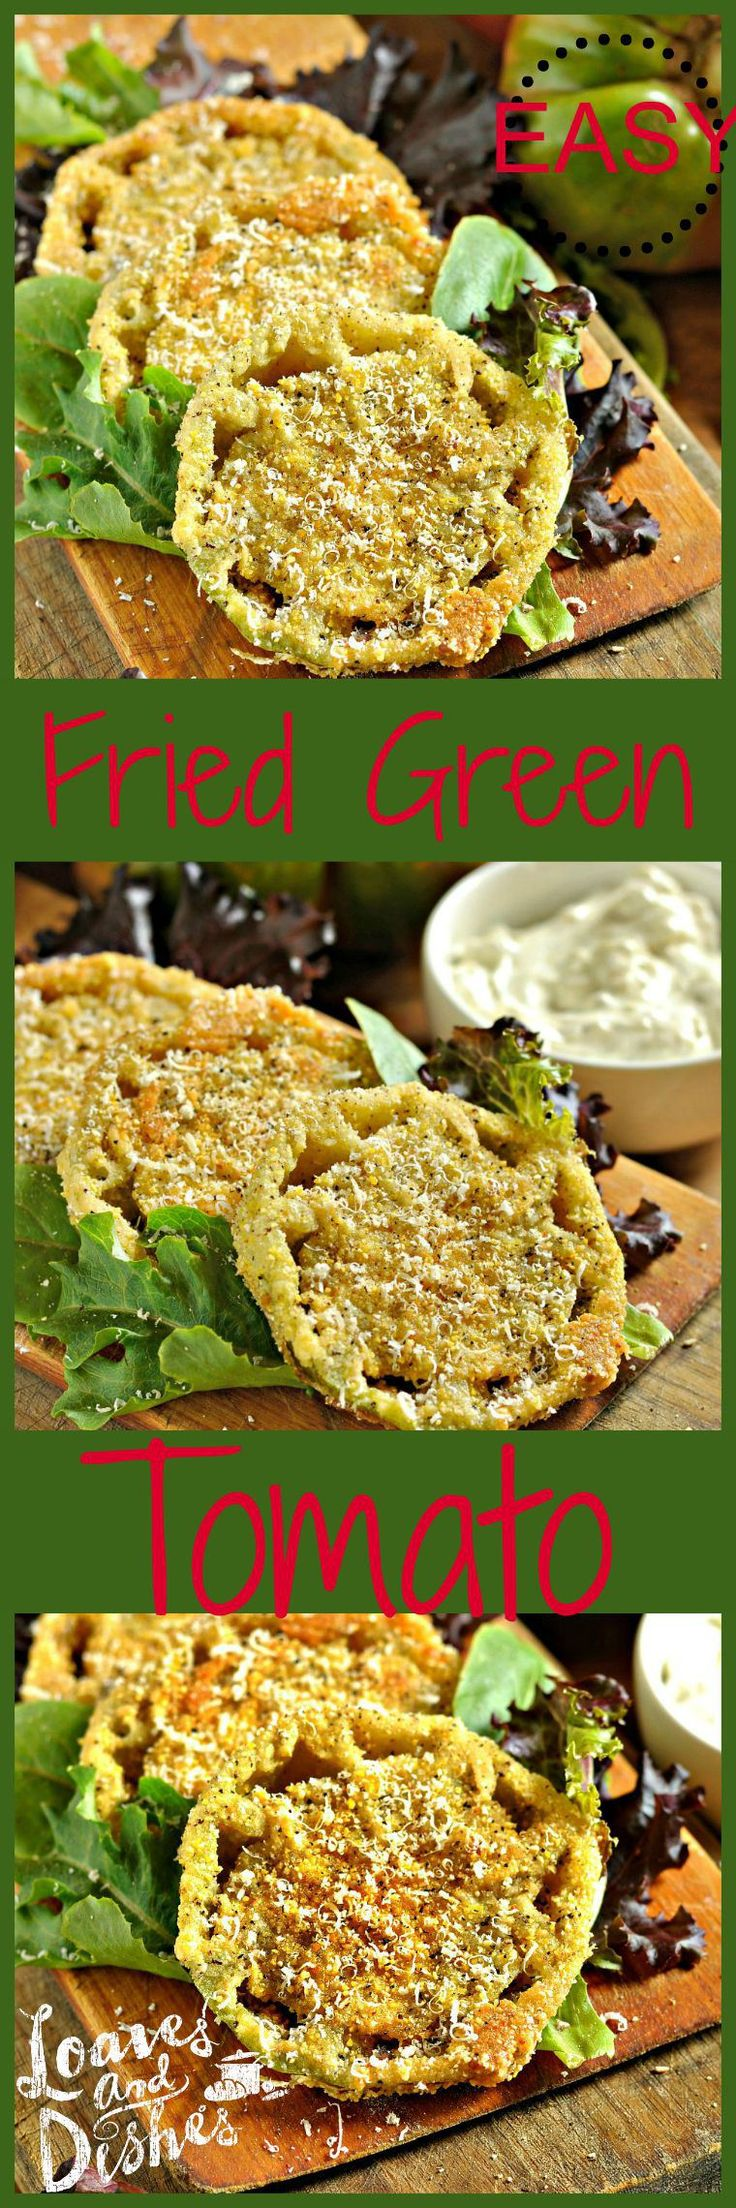 Need the best recipe for Fried Green Tomatoes?  Here it is!  Complete instructions @loavesanddishes.net